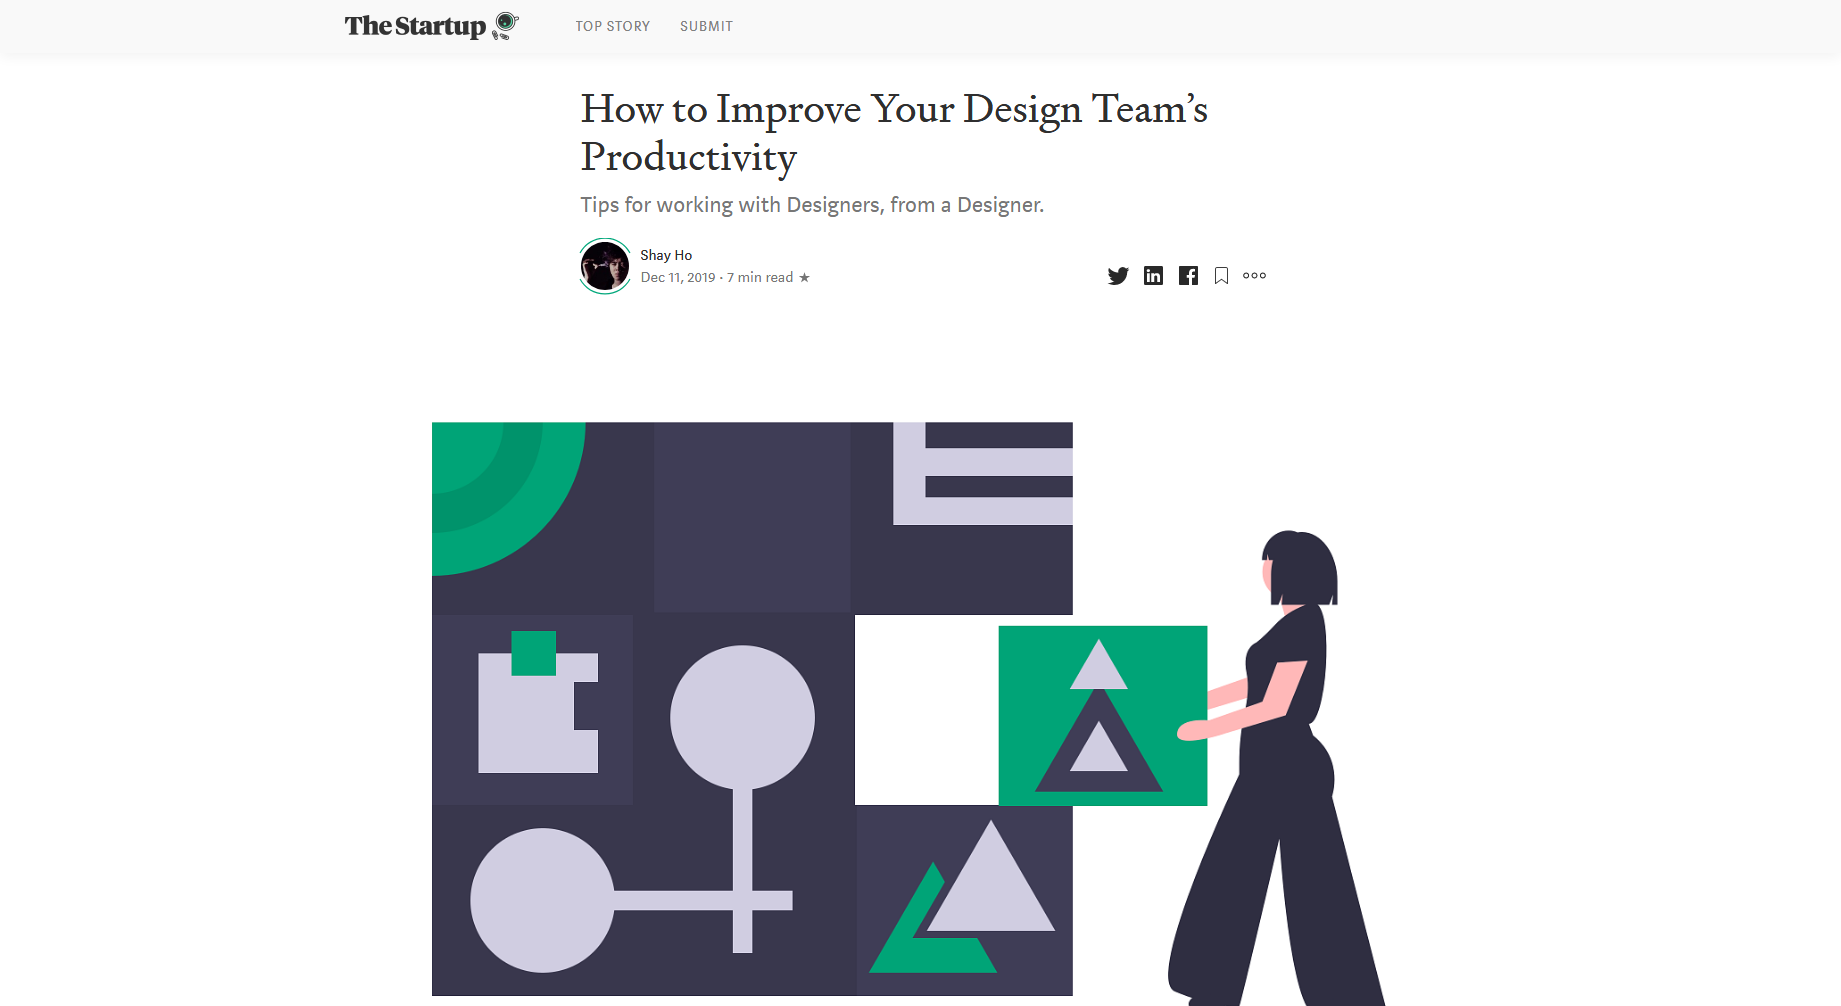 How to Improve Your Design Team's Productivity — The Startup